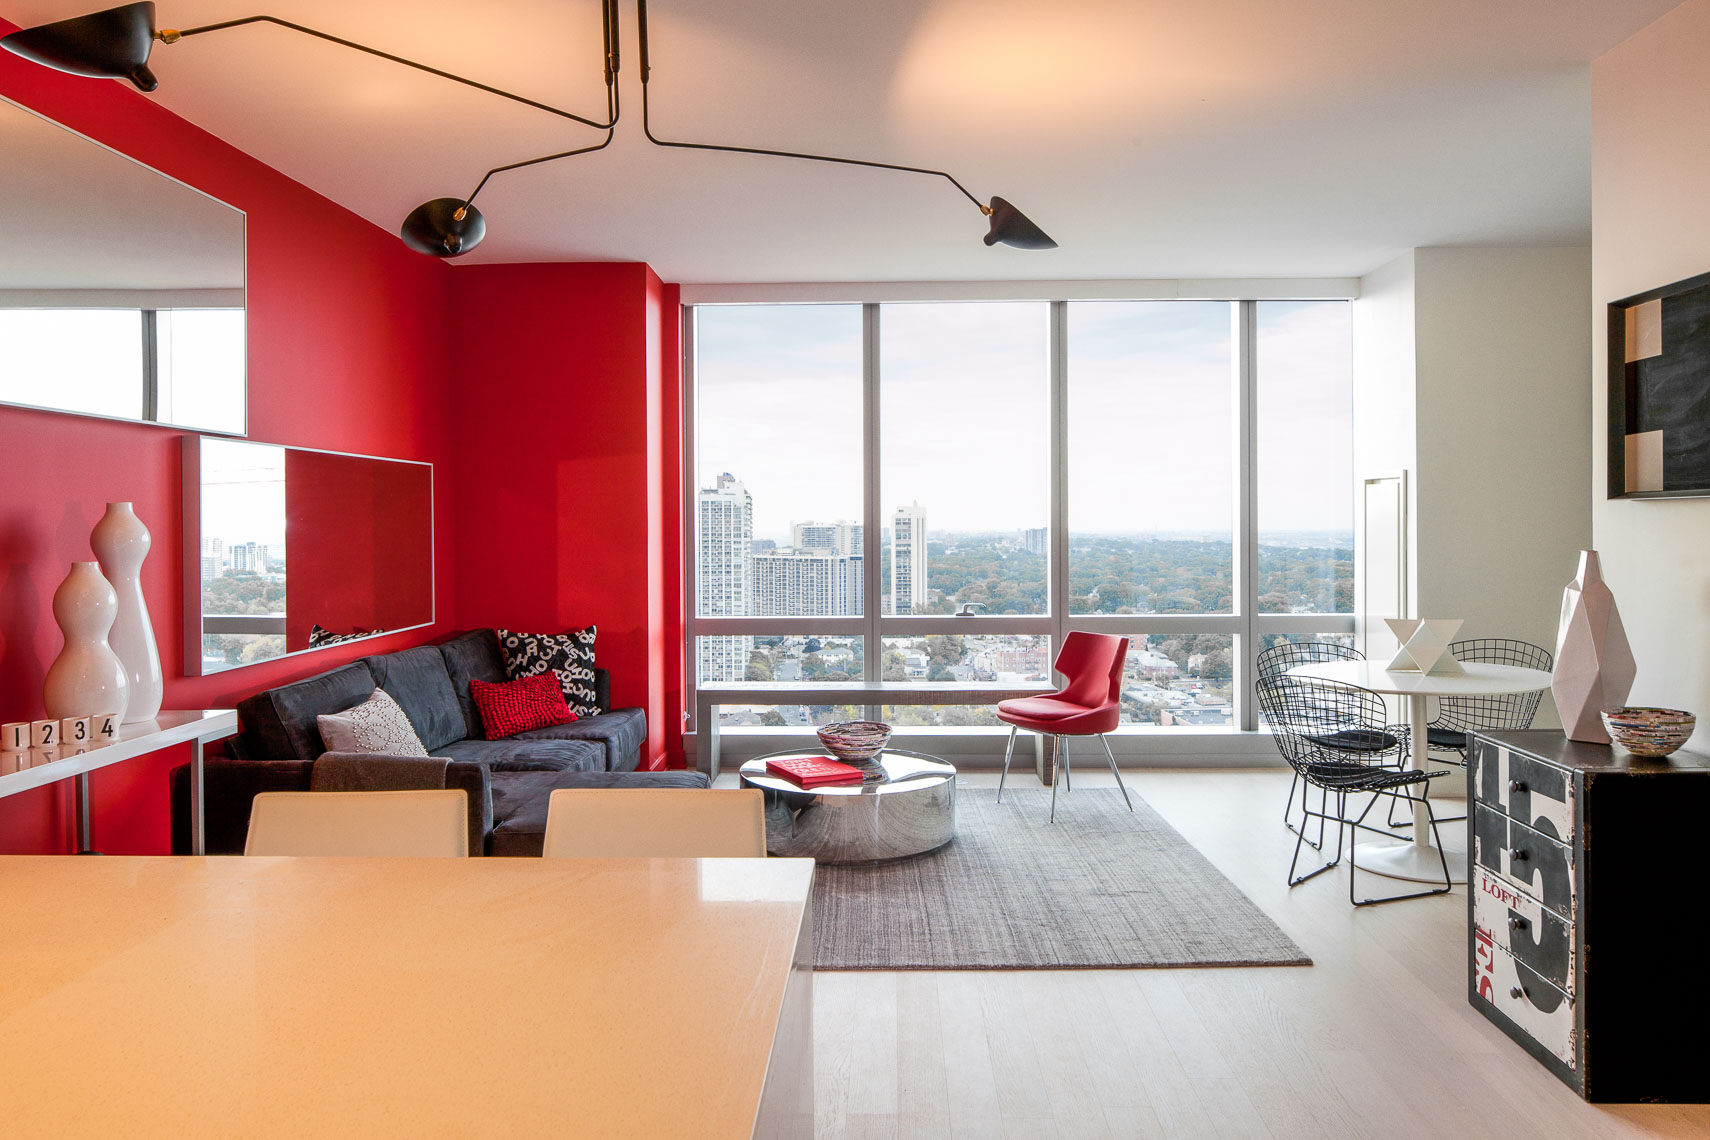 Modern interiors of a luxury apartment with red walls and red chair